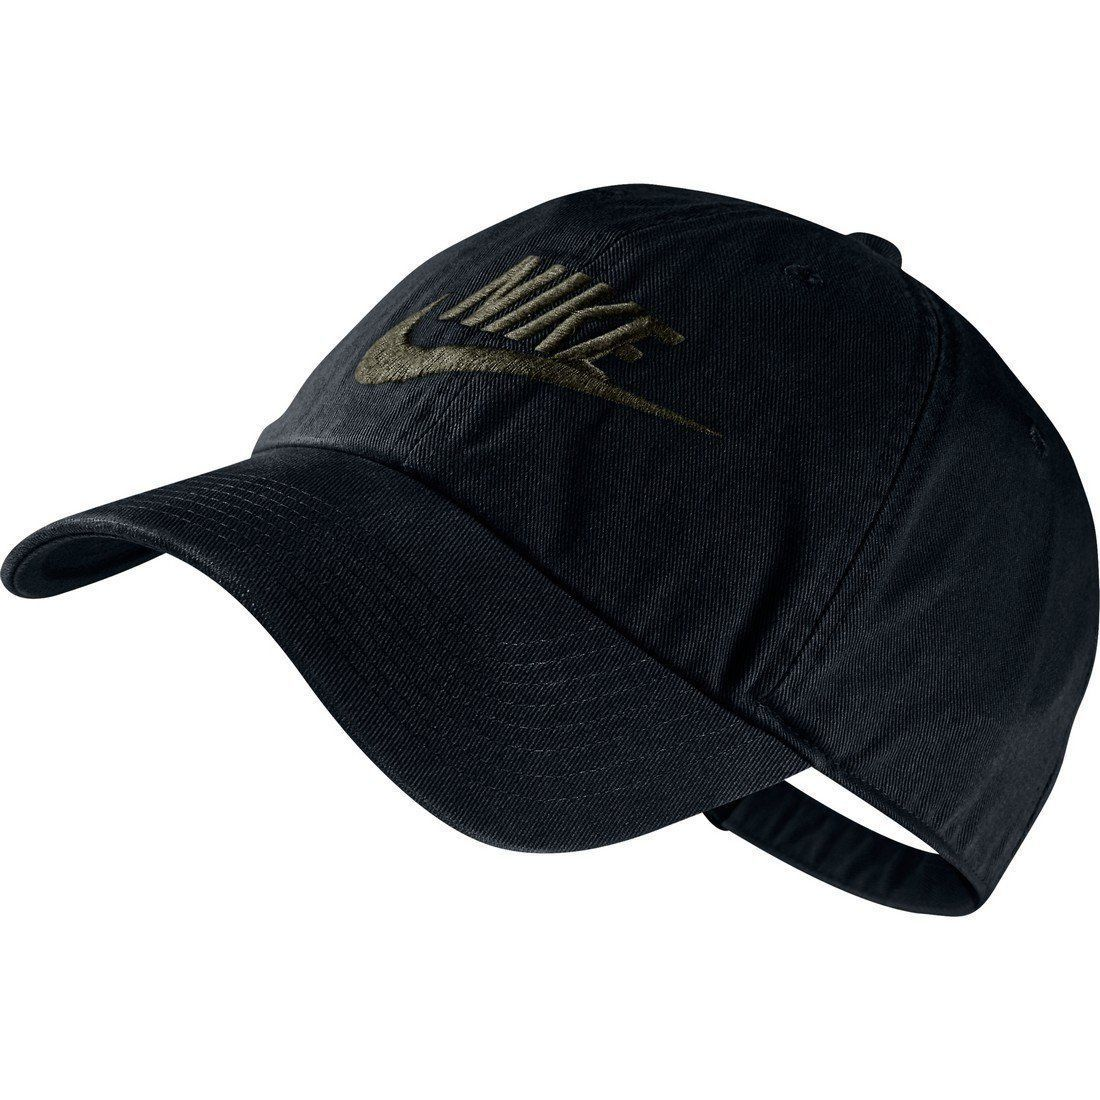 Hats 45230  Nike Futura Washed Heritage 86 Baseball Cap Black Olive Green  (Ws) -  BUY IT NOW ONLY   32 on eBay! 23a6760dbd5